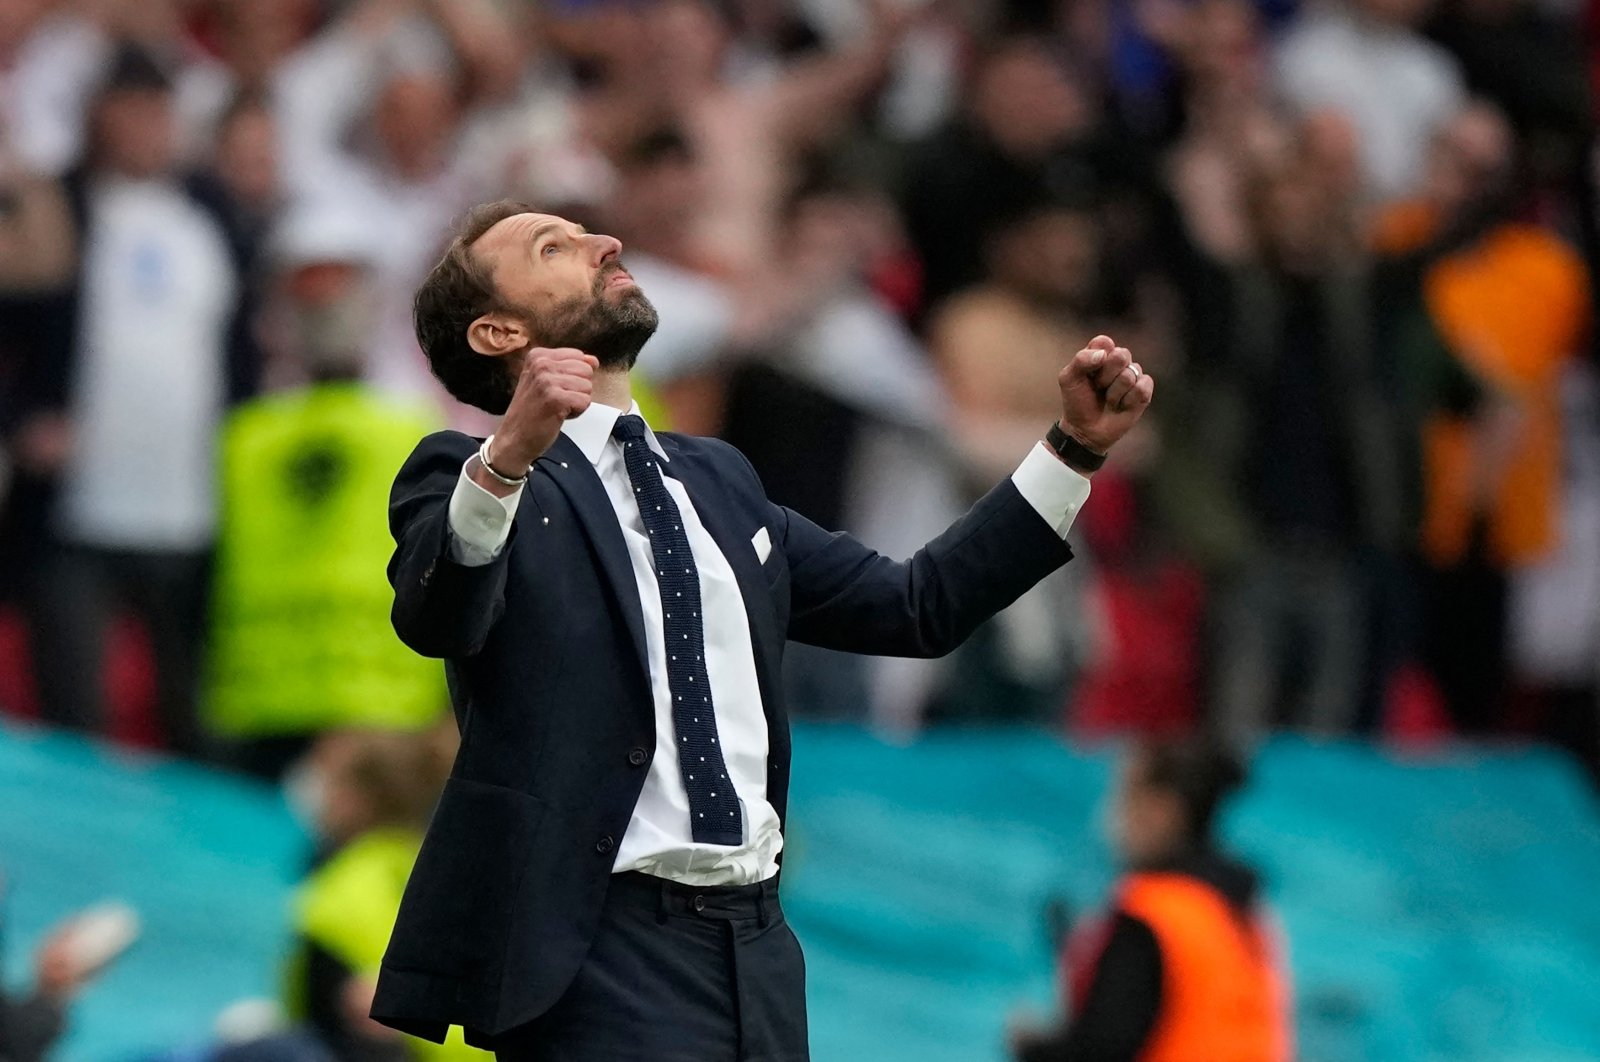 England's coach Gareth Southgate celebrates his team's victory at the end of the UEFA EURO 2020 round of 16 match against Germany at Wembley Stadium, London, England, June 29, 2021. (AFP Photo)